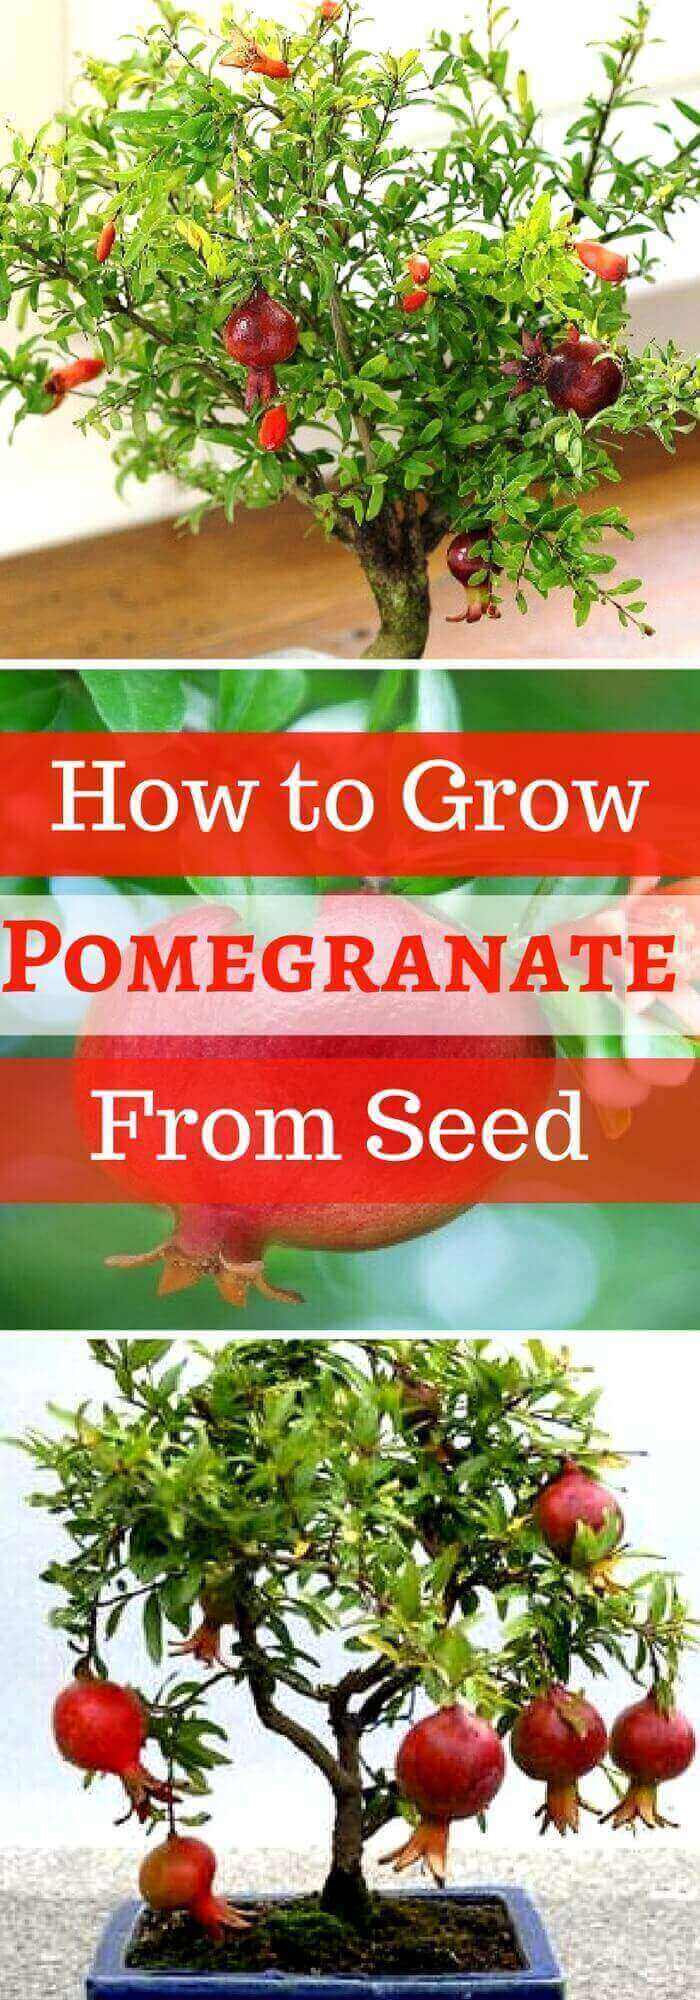 Step by Step Procedure for Growing Pomegranate Plant from Seed Indoors